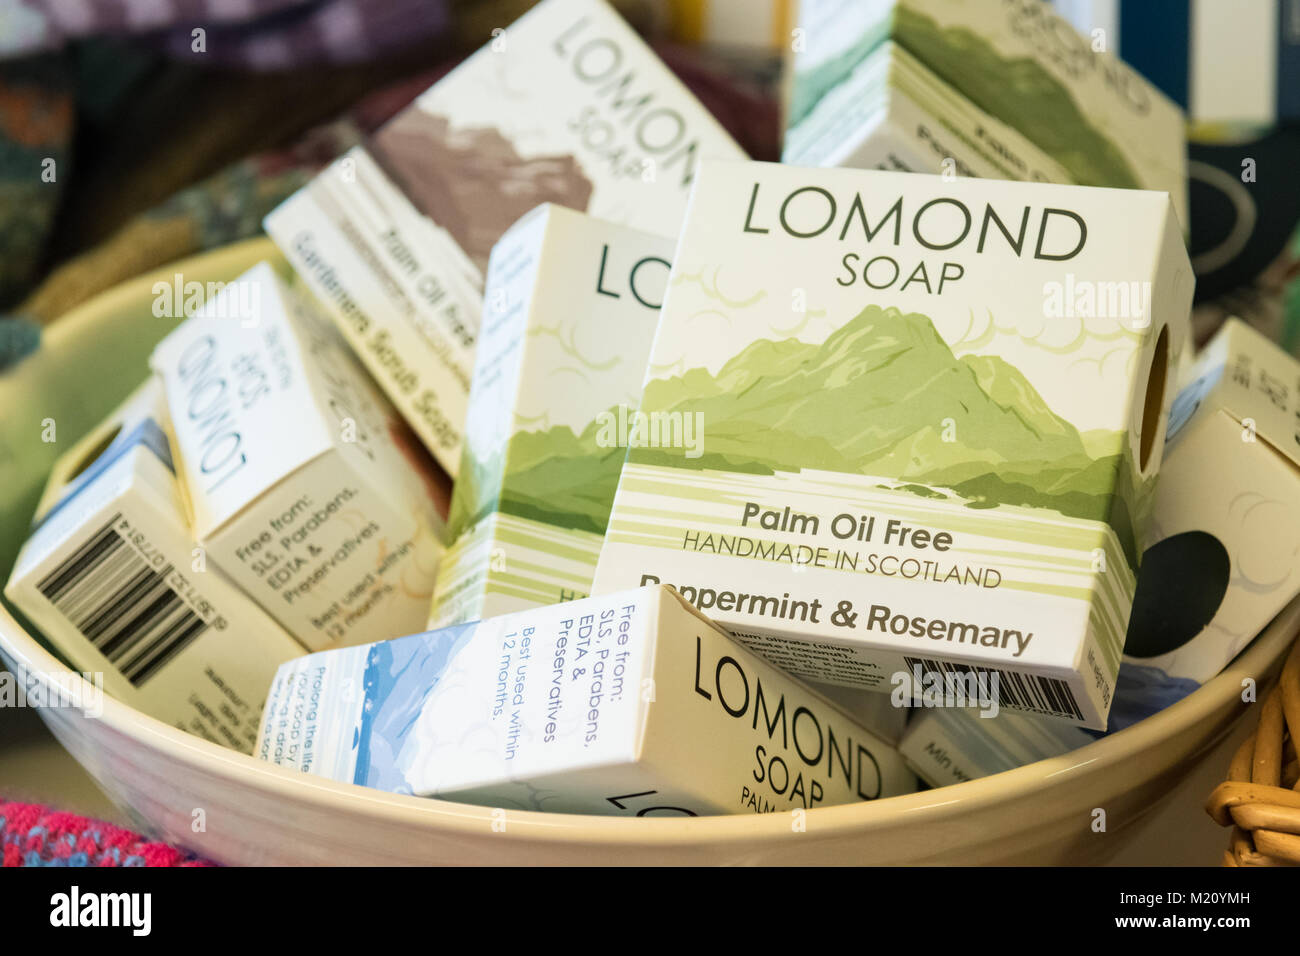 Palm Oil Free soap - Lomond Soap - handmade soap made in Scotland, UK - Stock Image